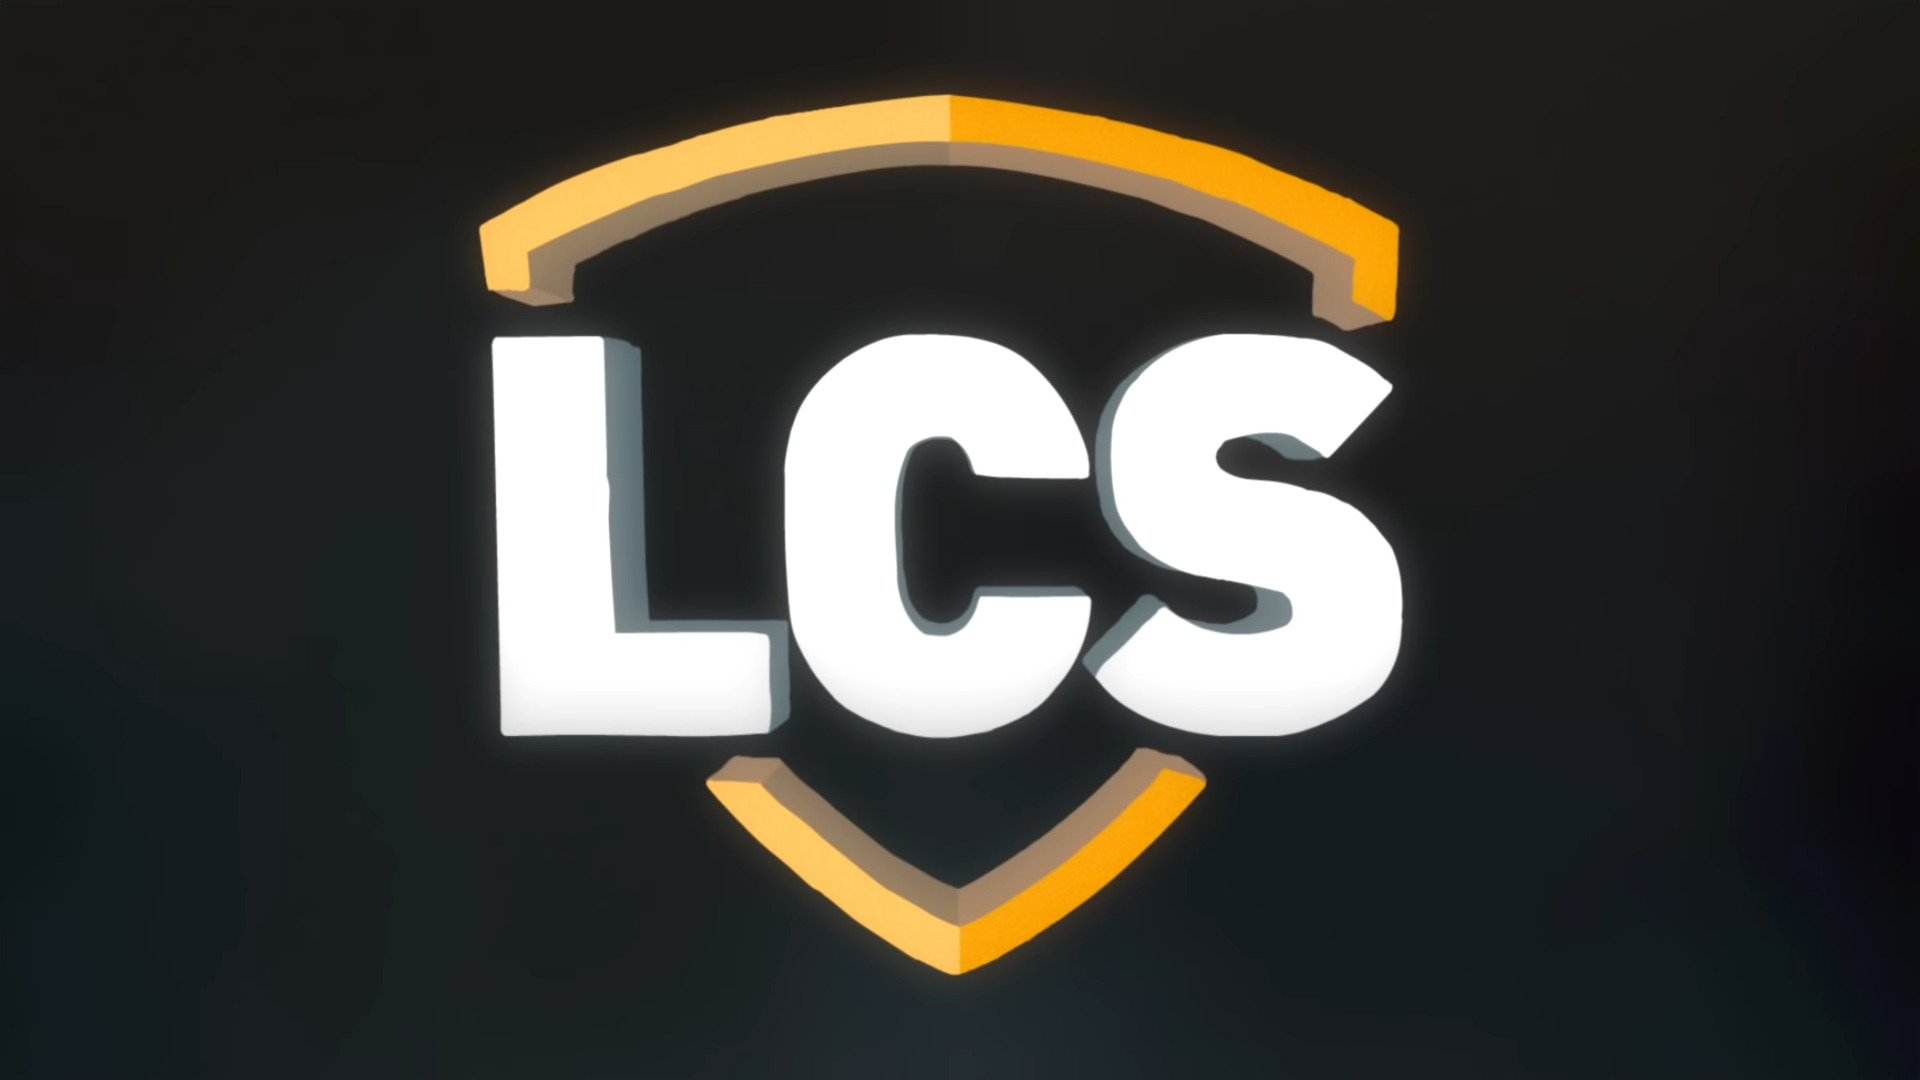 LCS – Cloud9 Confirmed The Same League Of Legends Roster For Upcoming LCS Spring Split 2021